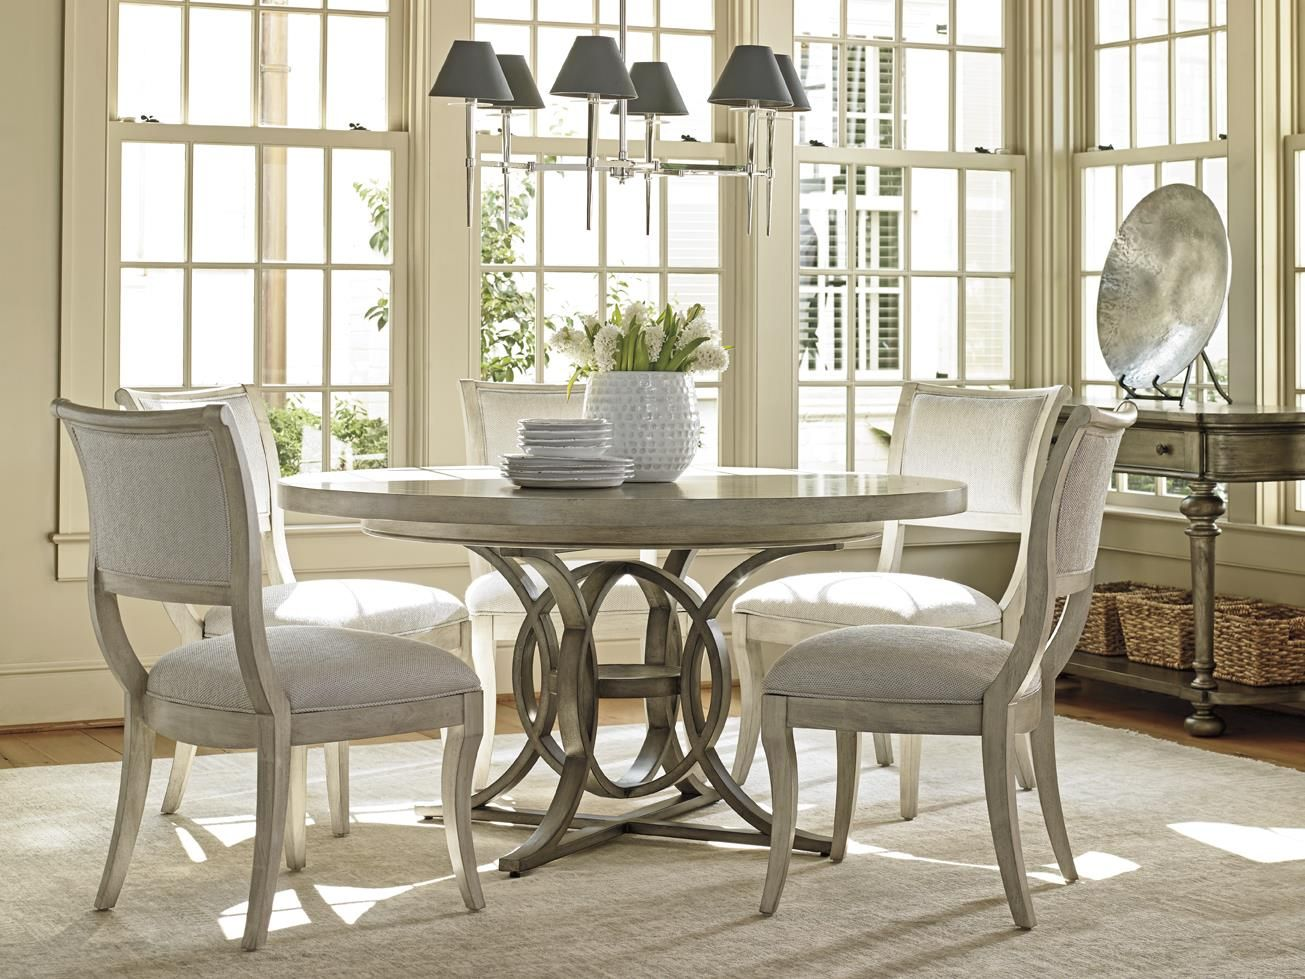 Oyster Bay Formal Dining Room Group by Lexington | Formal dining ...